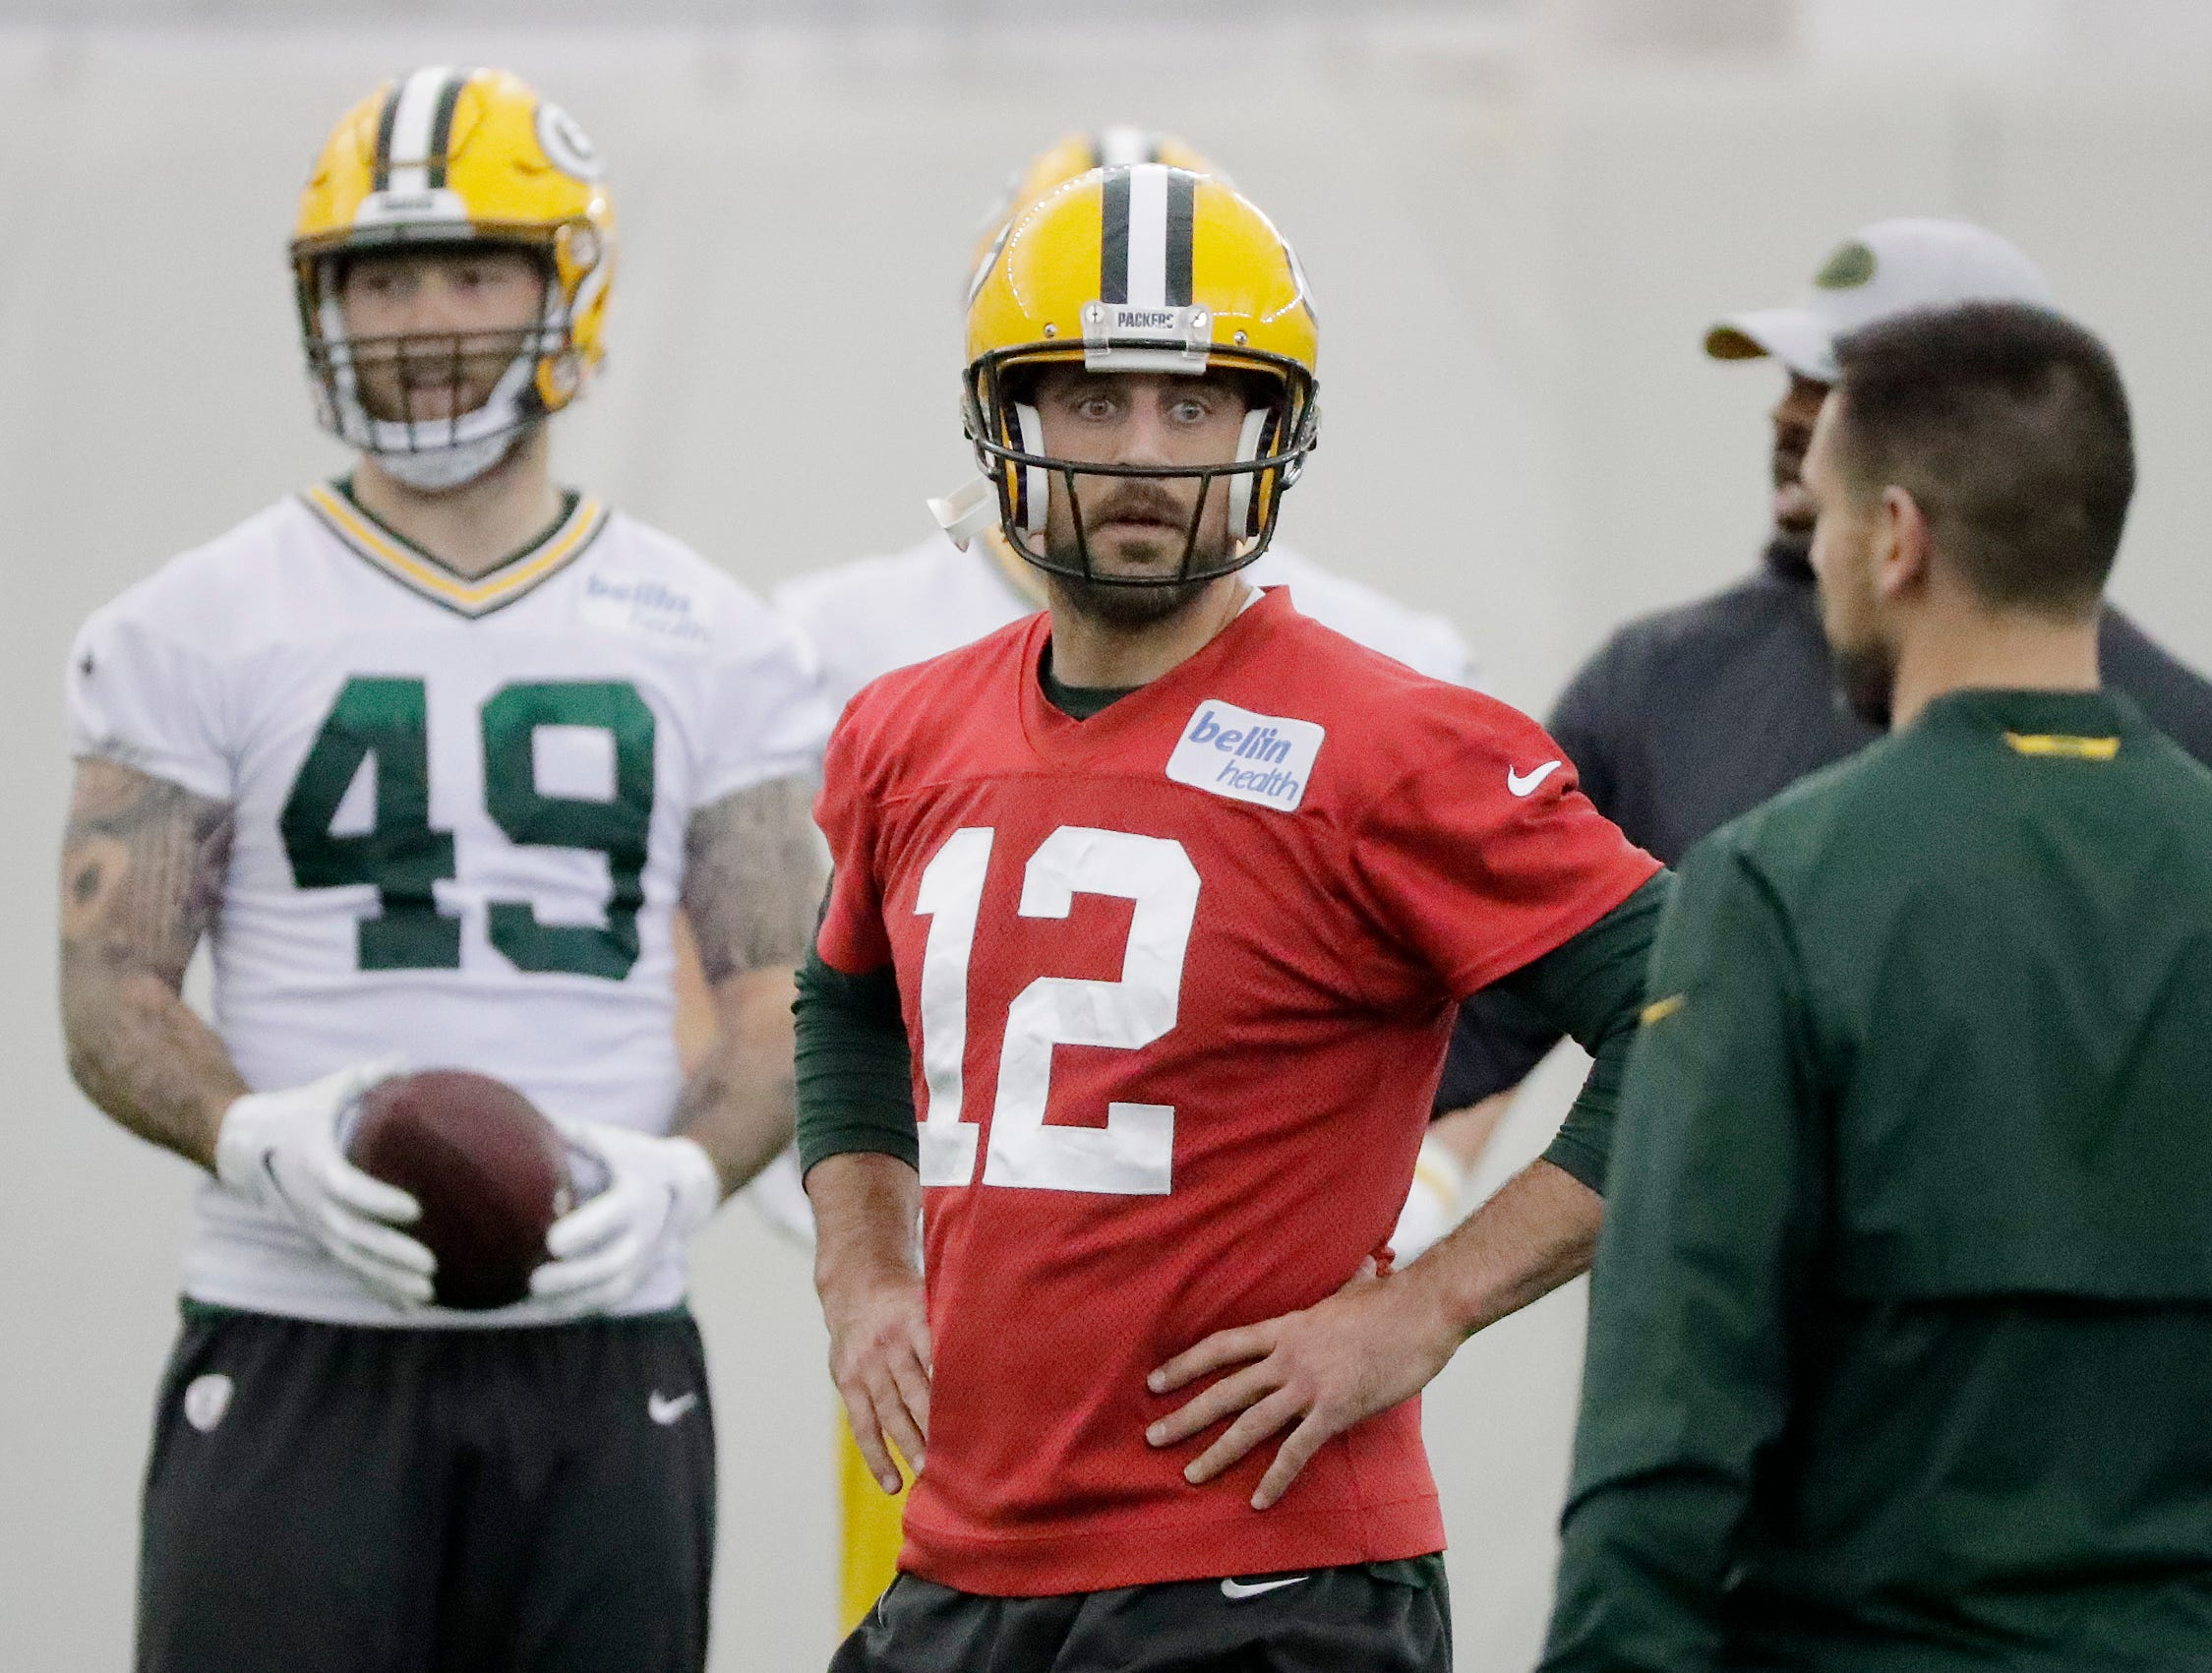 Green Bay Packers quarterback Aaron Rodgers (12) talks to head coach Matt LaFleur during a team practice at the Don Hutson Center on Wednesday, April 24, 2019 in Ashwaubenon, Wis.